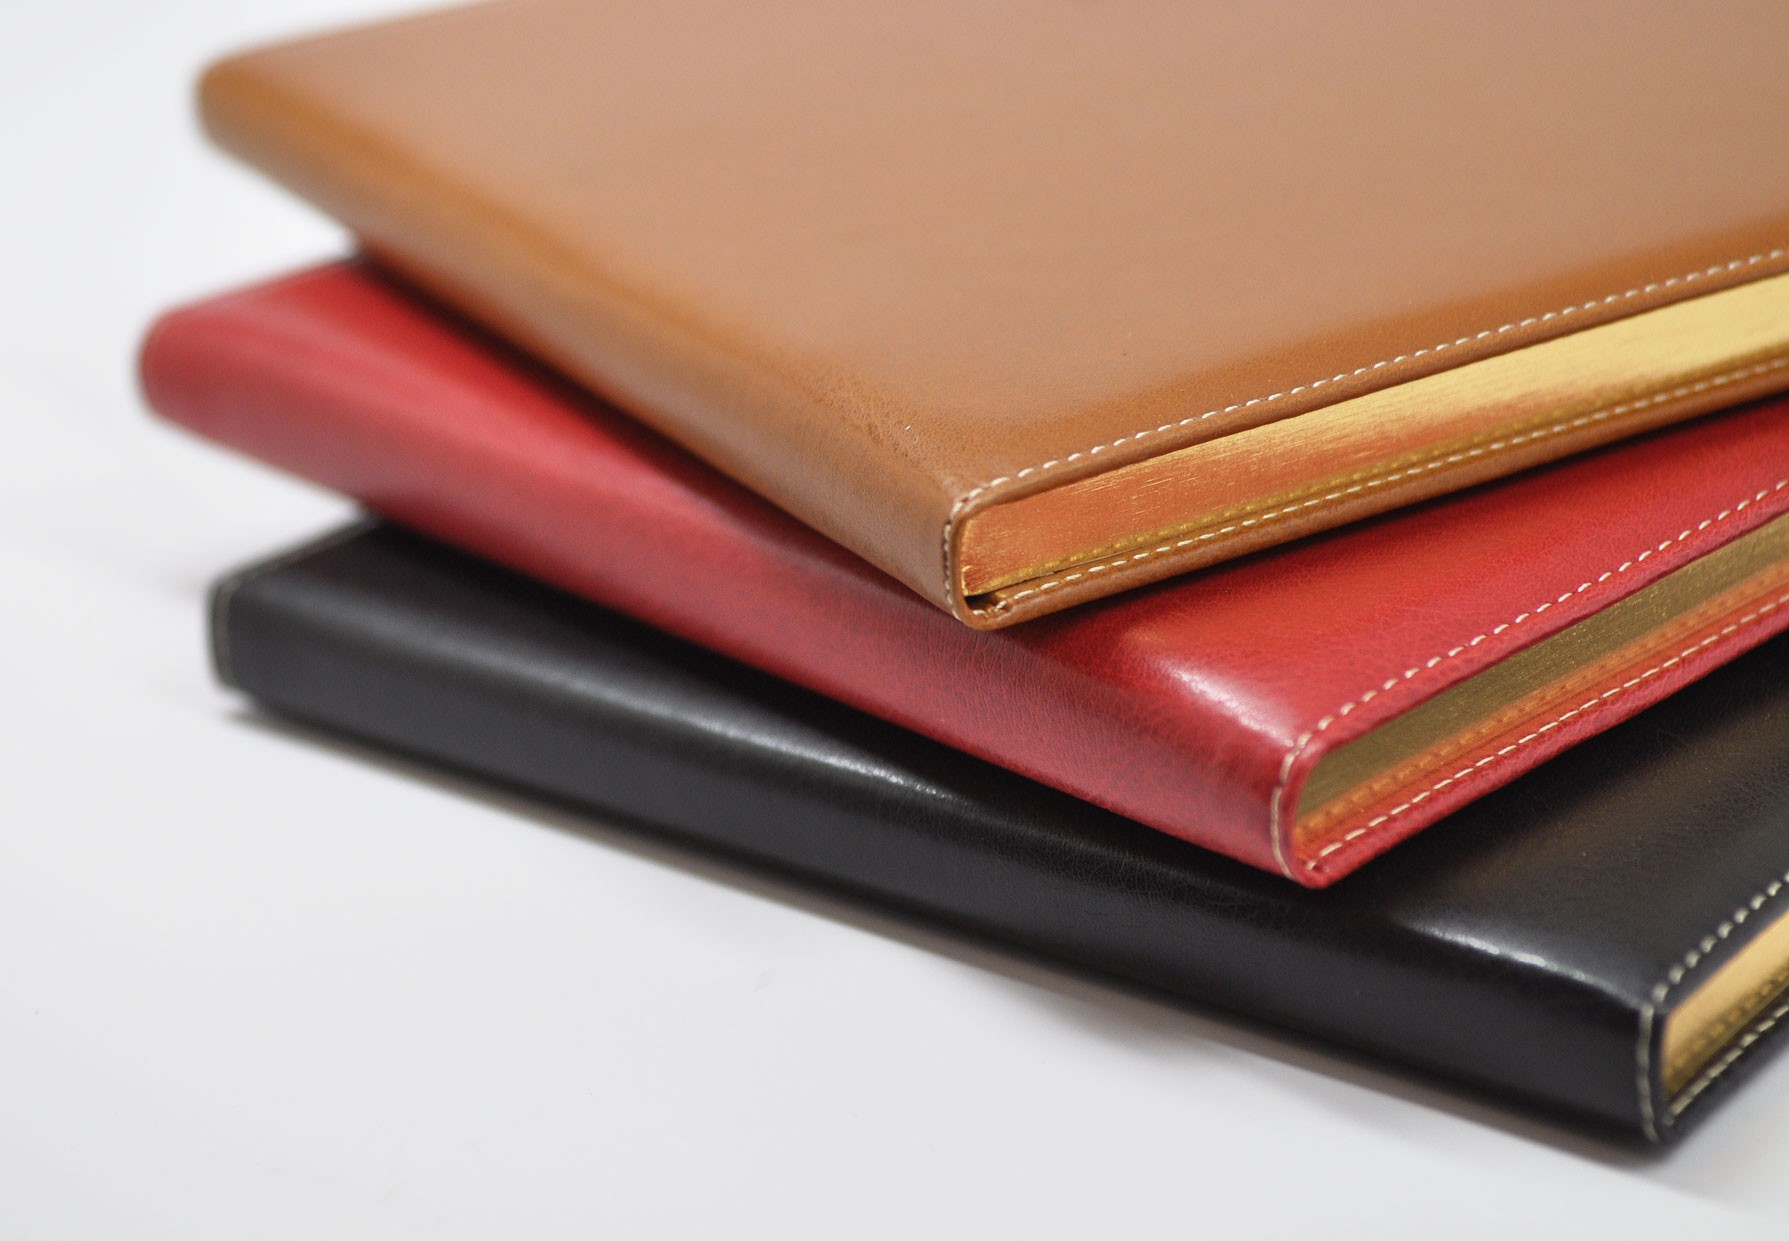 Fioina Italian Leather Guest Book Spine Detail